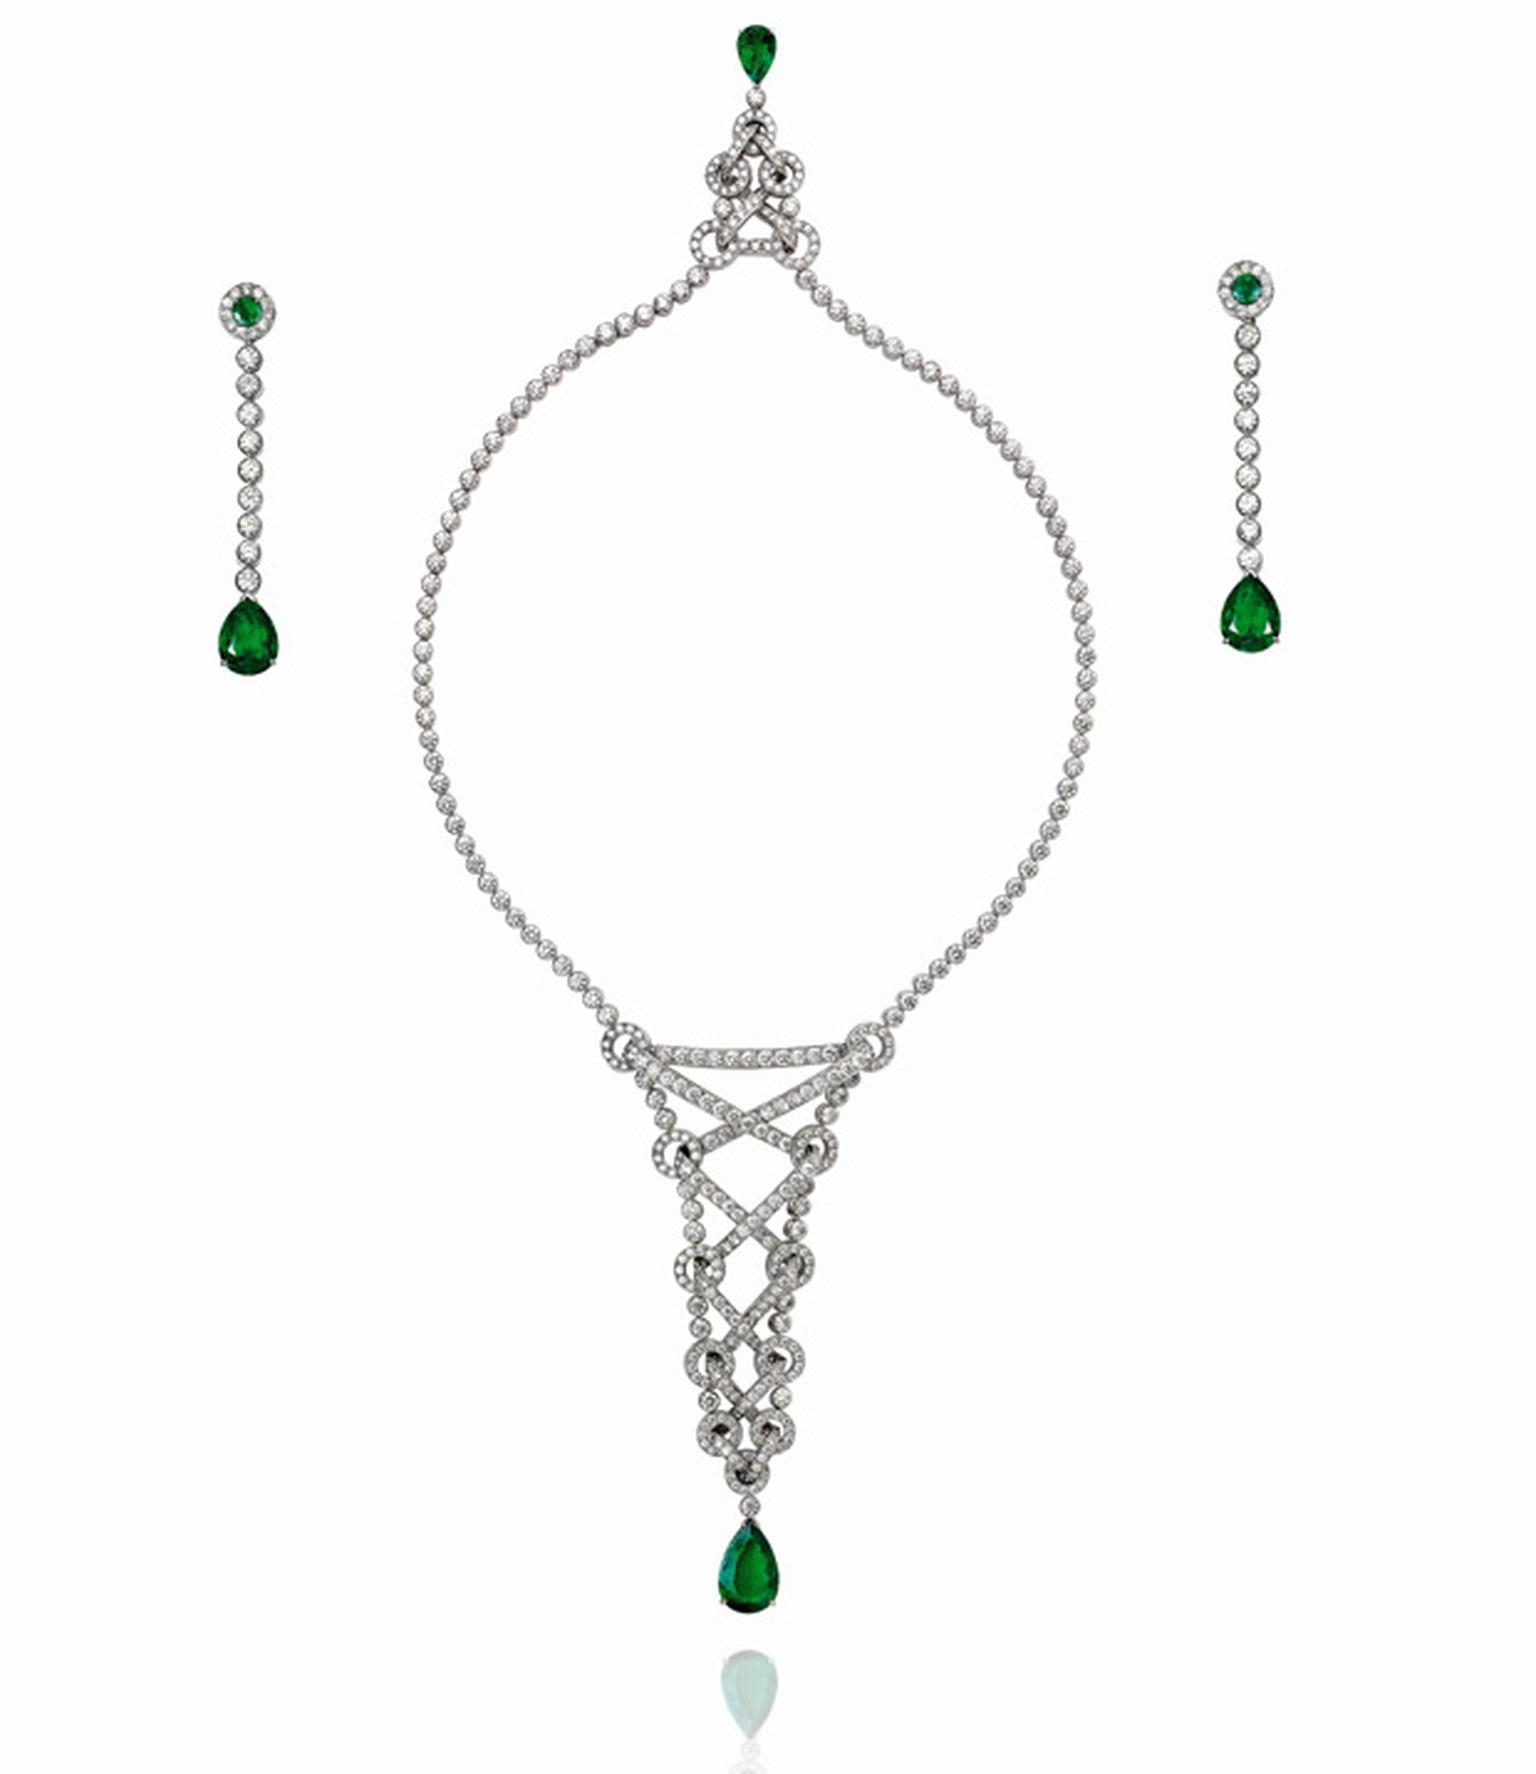 Piaget white gold necklace set and earrings with diamond and two emeralds